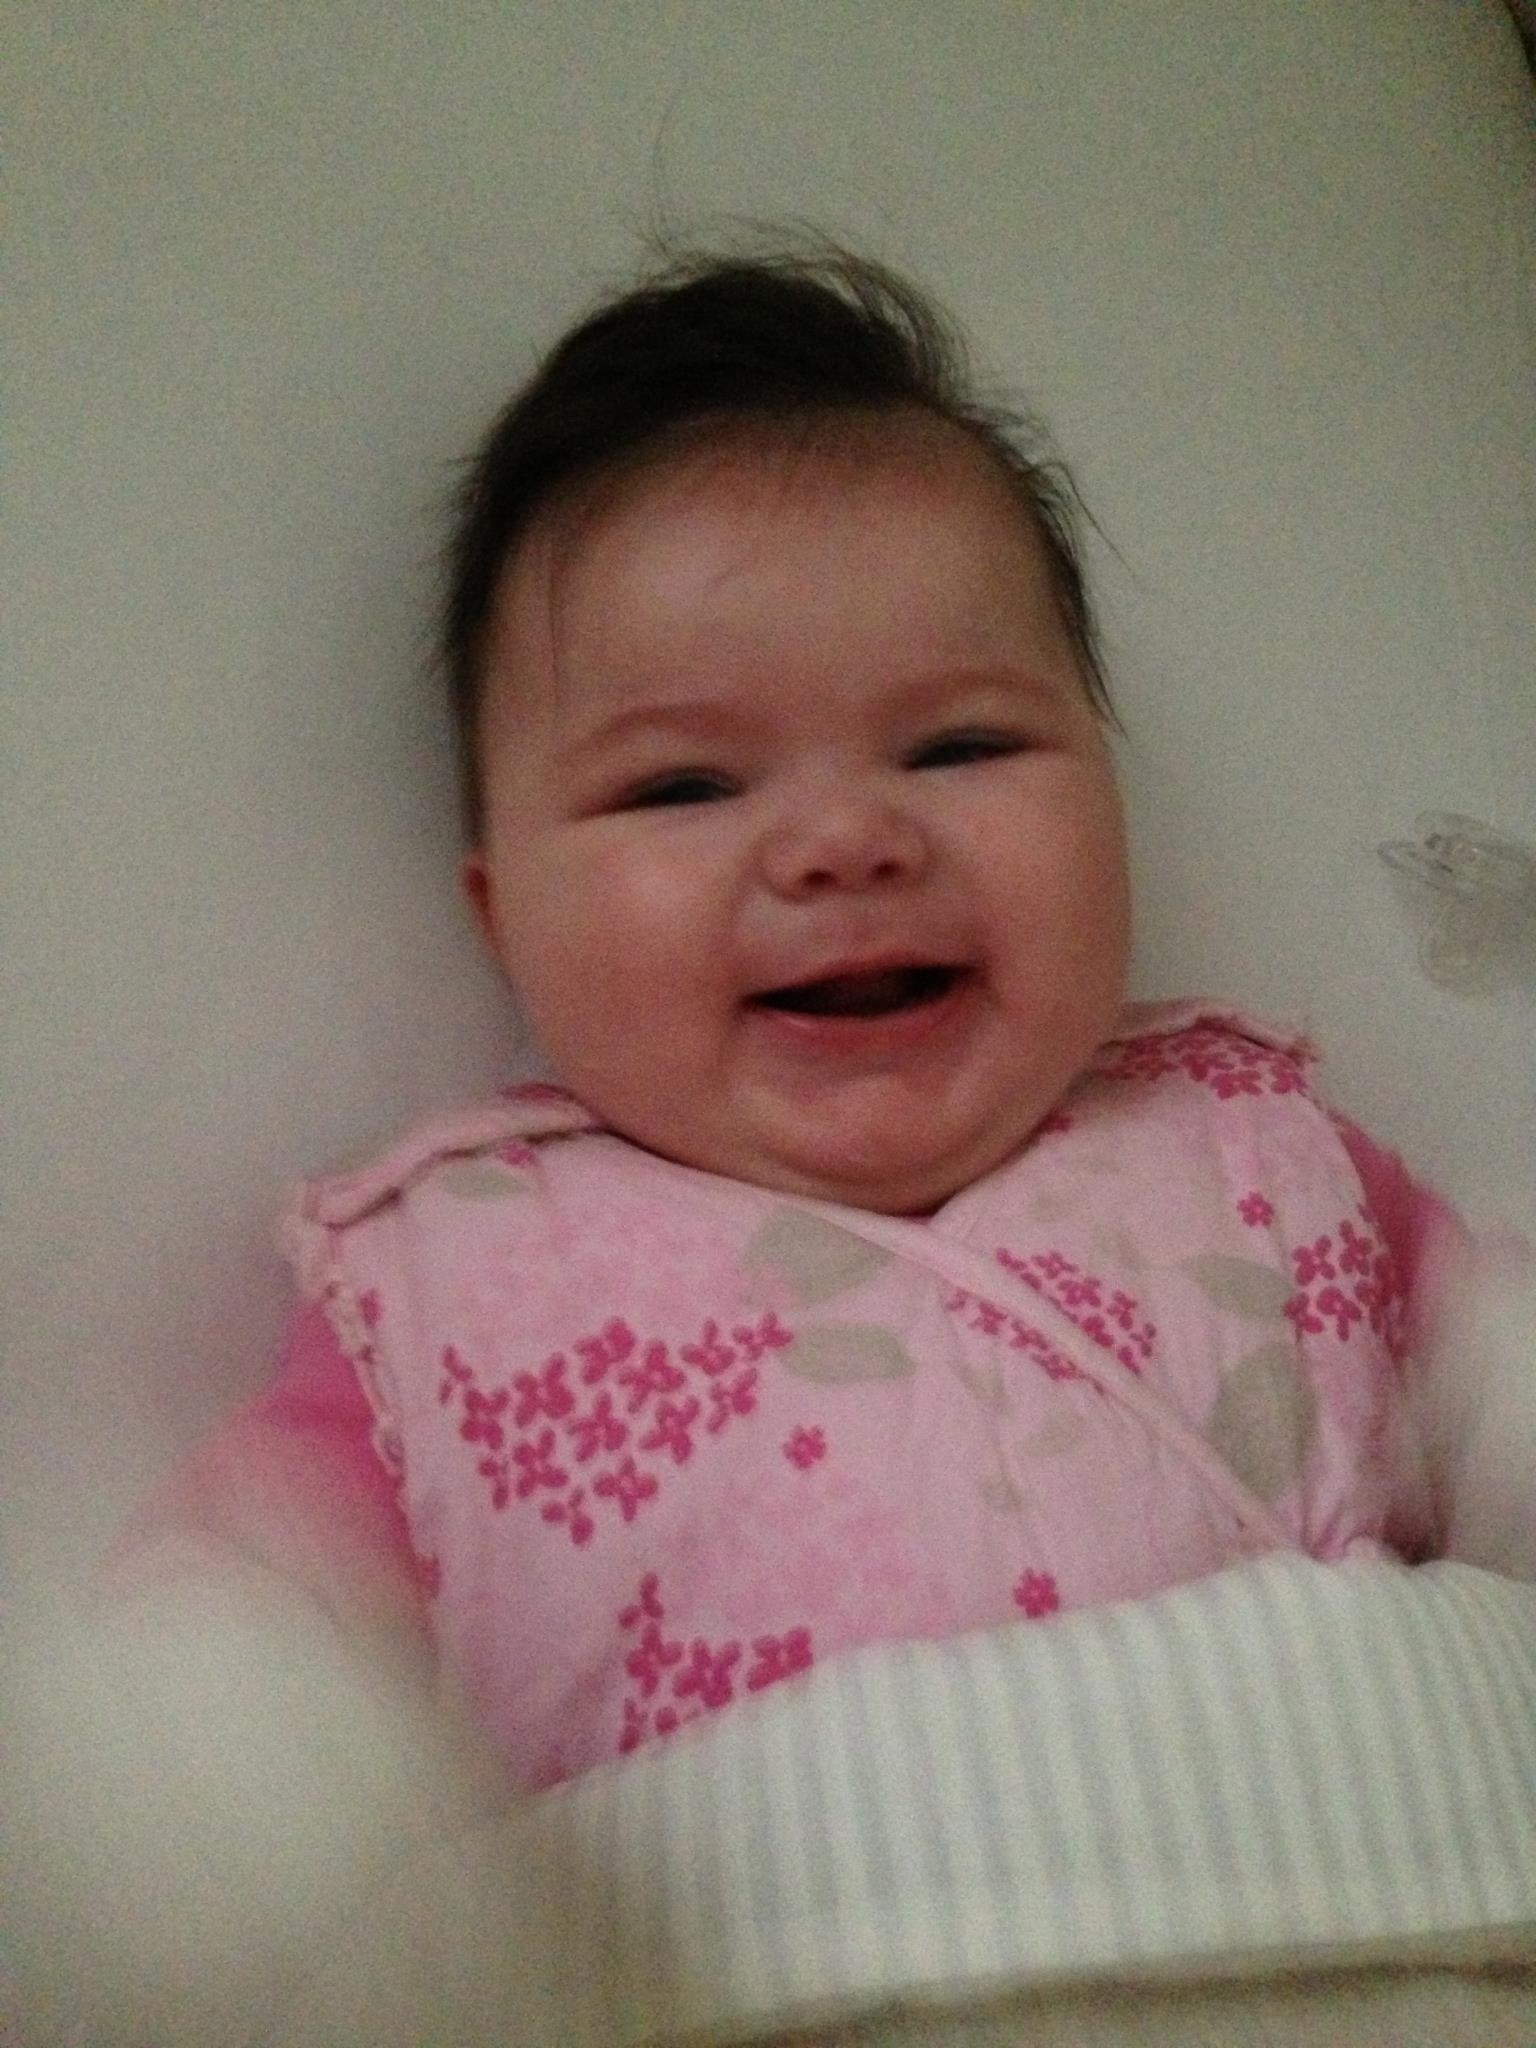 Hi mum here is lily smiling away she be a happy wee baby x x